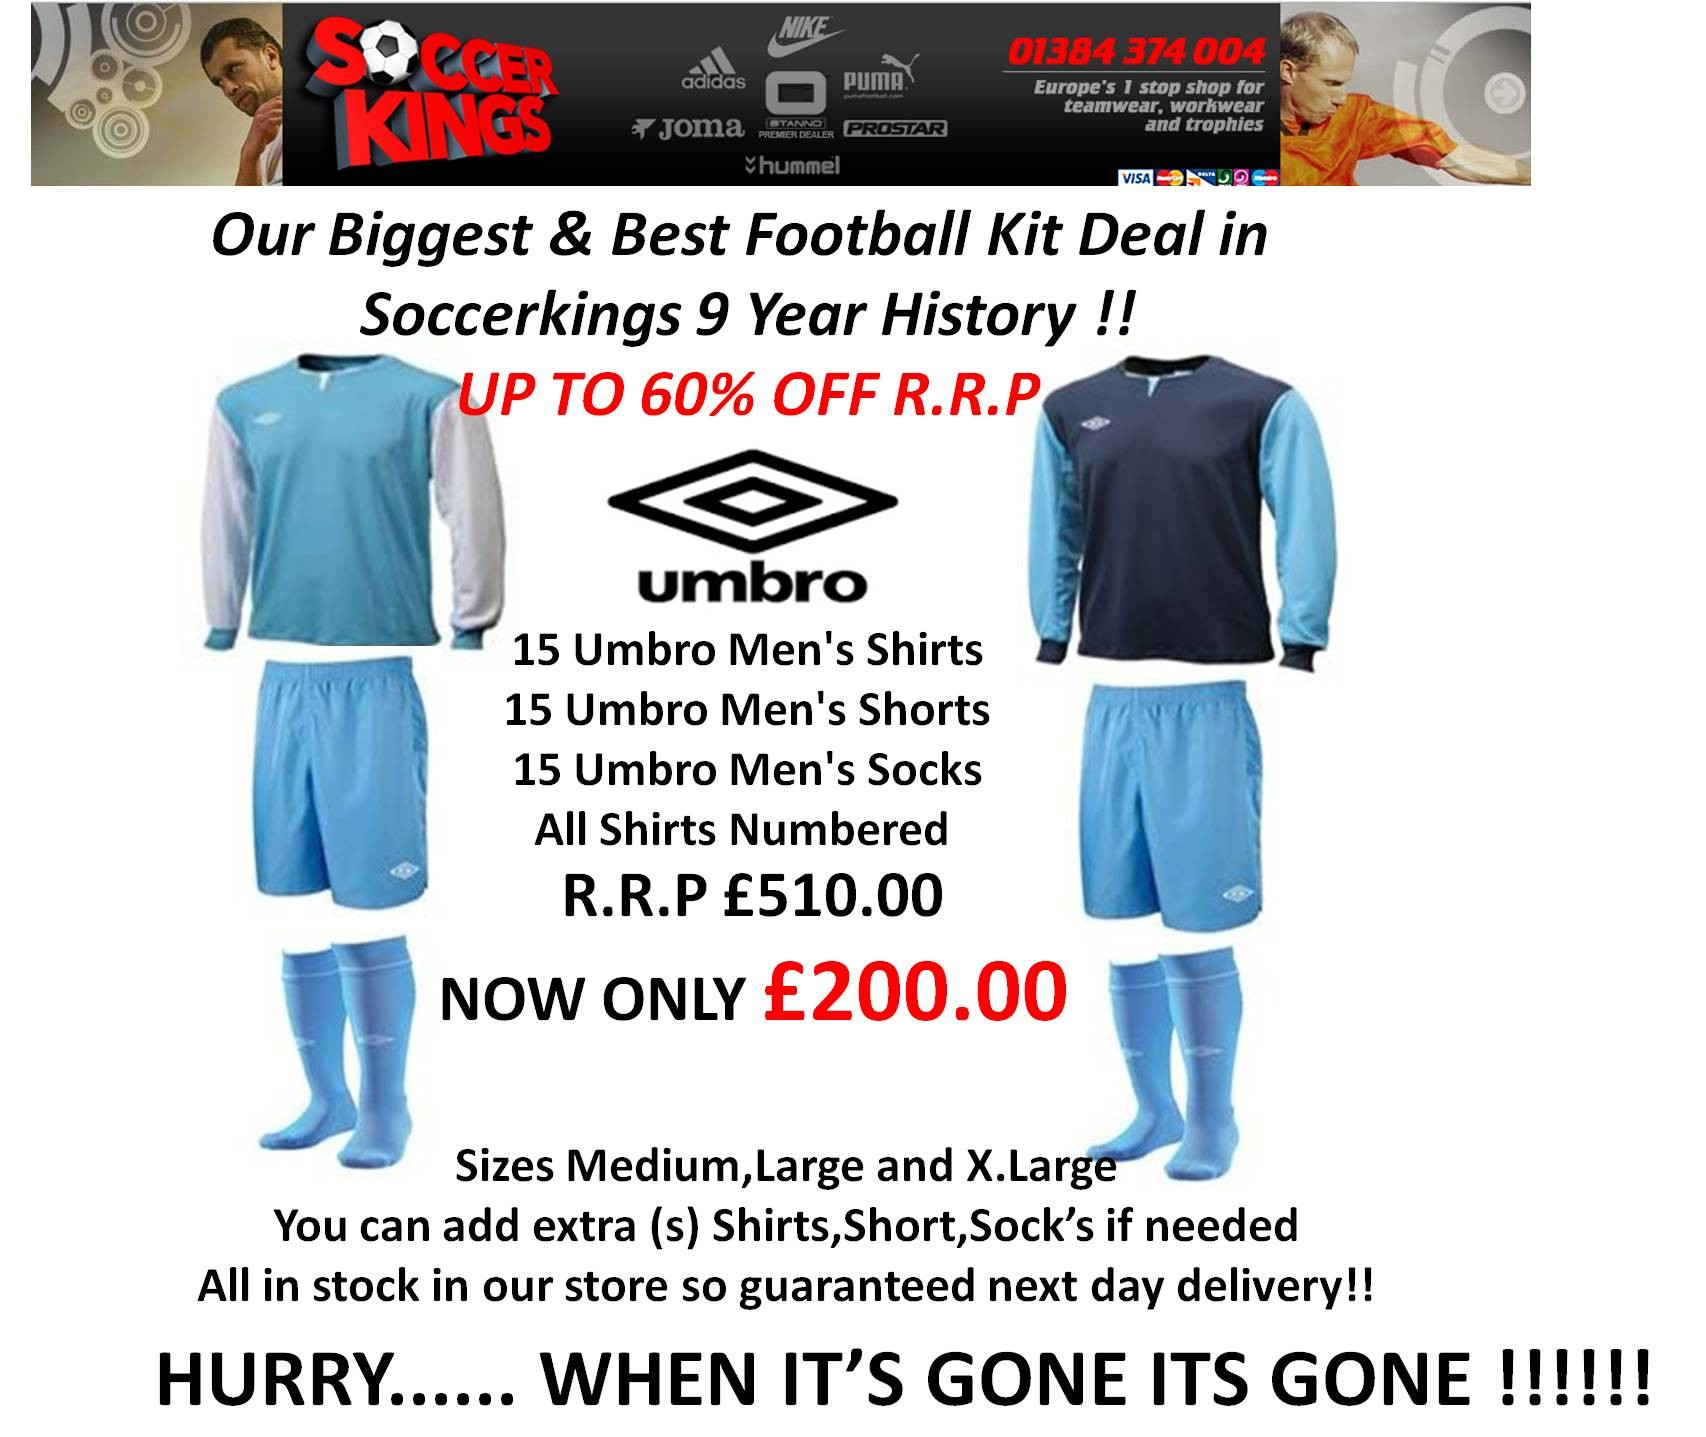 Umbro Kit deal R.R.P £510.00 NOW ONLY £200.00